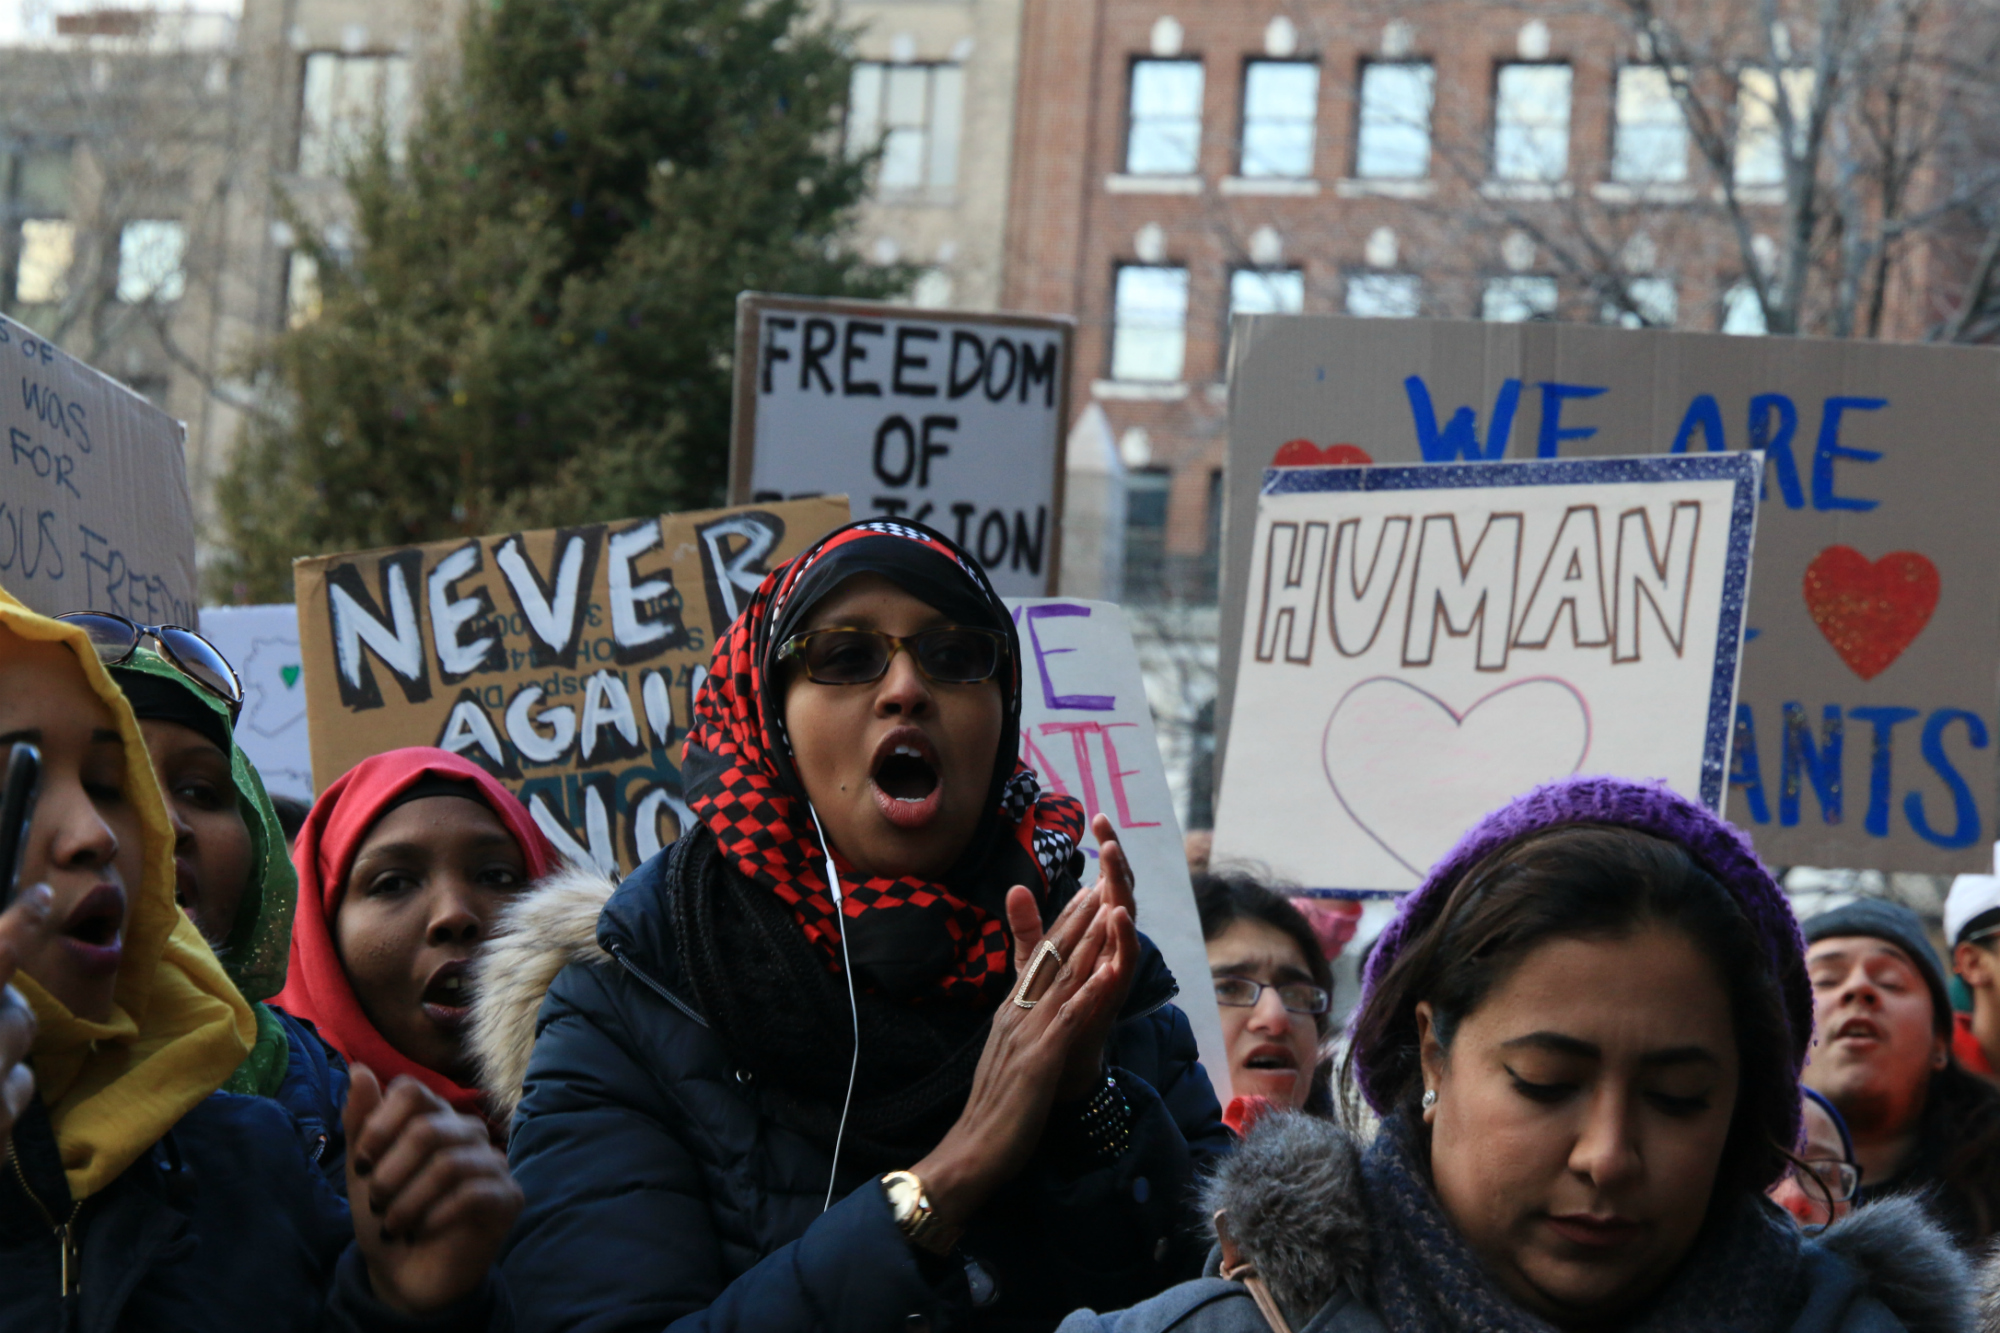 Demonstrators are pictured in Boston's Copley Square on Jan. 29, 2017, protesting President Donald Trump's executive order banning immigration from seven majority-Muslim countries. (Photo by Giulia Afiune/GroundTruth)